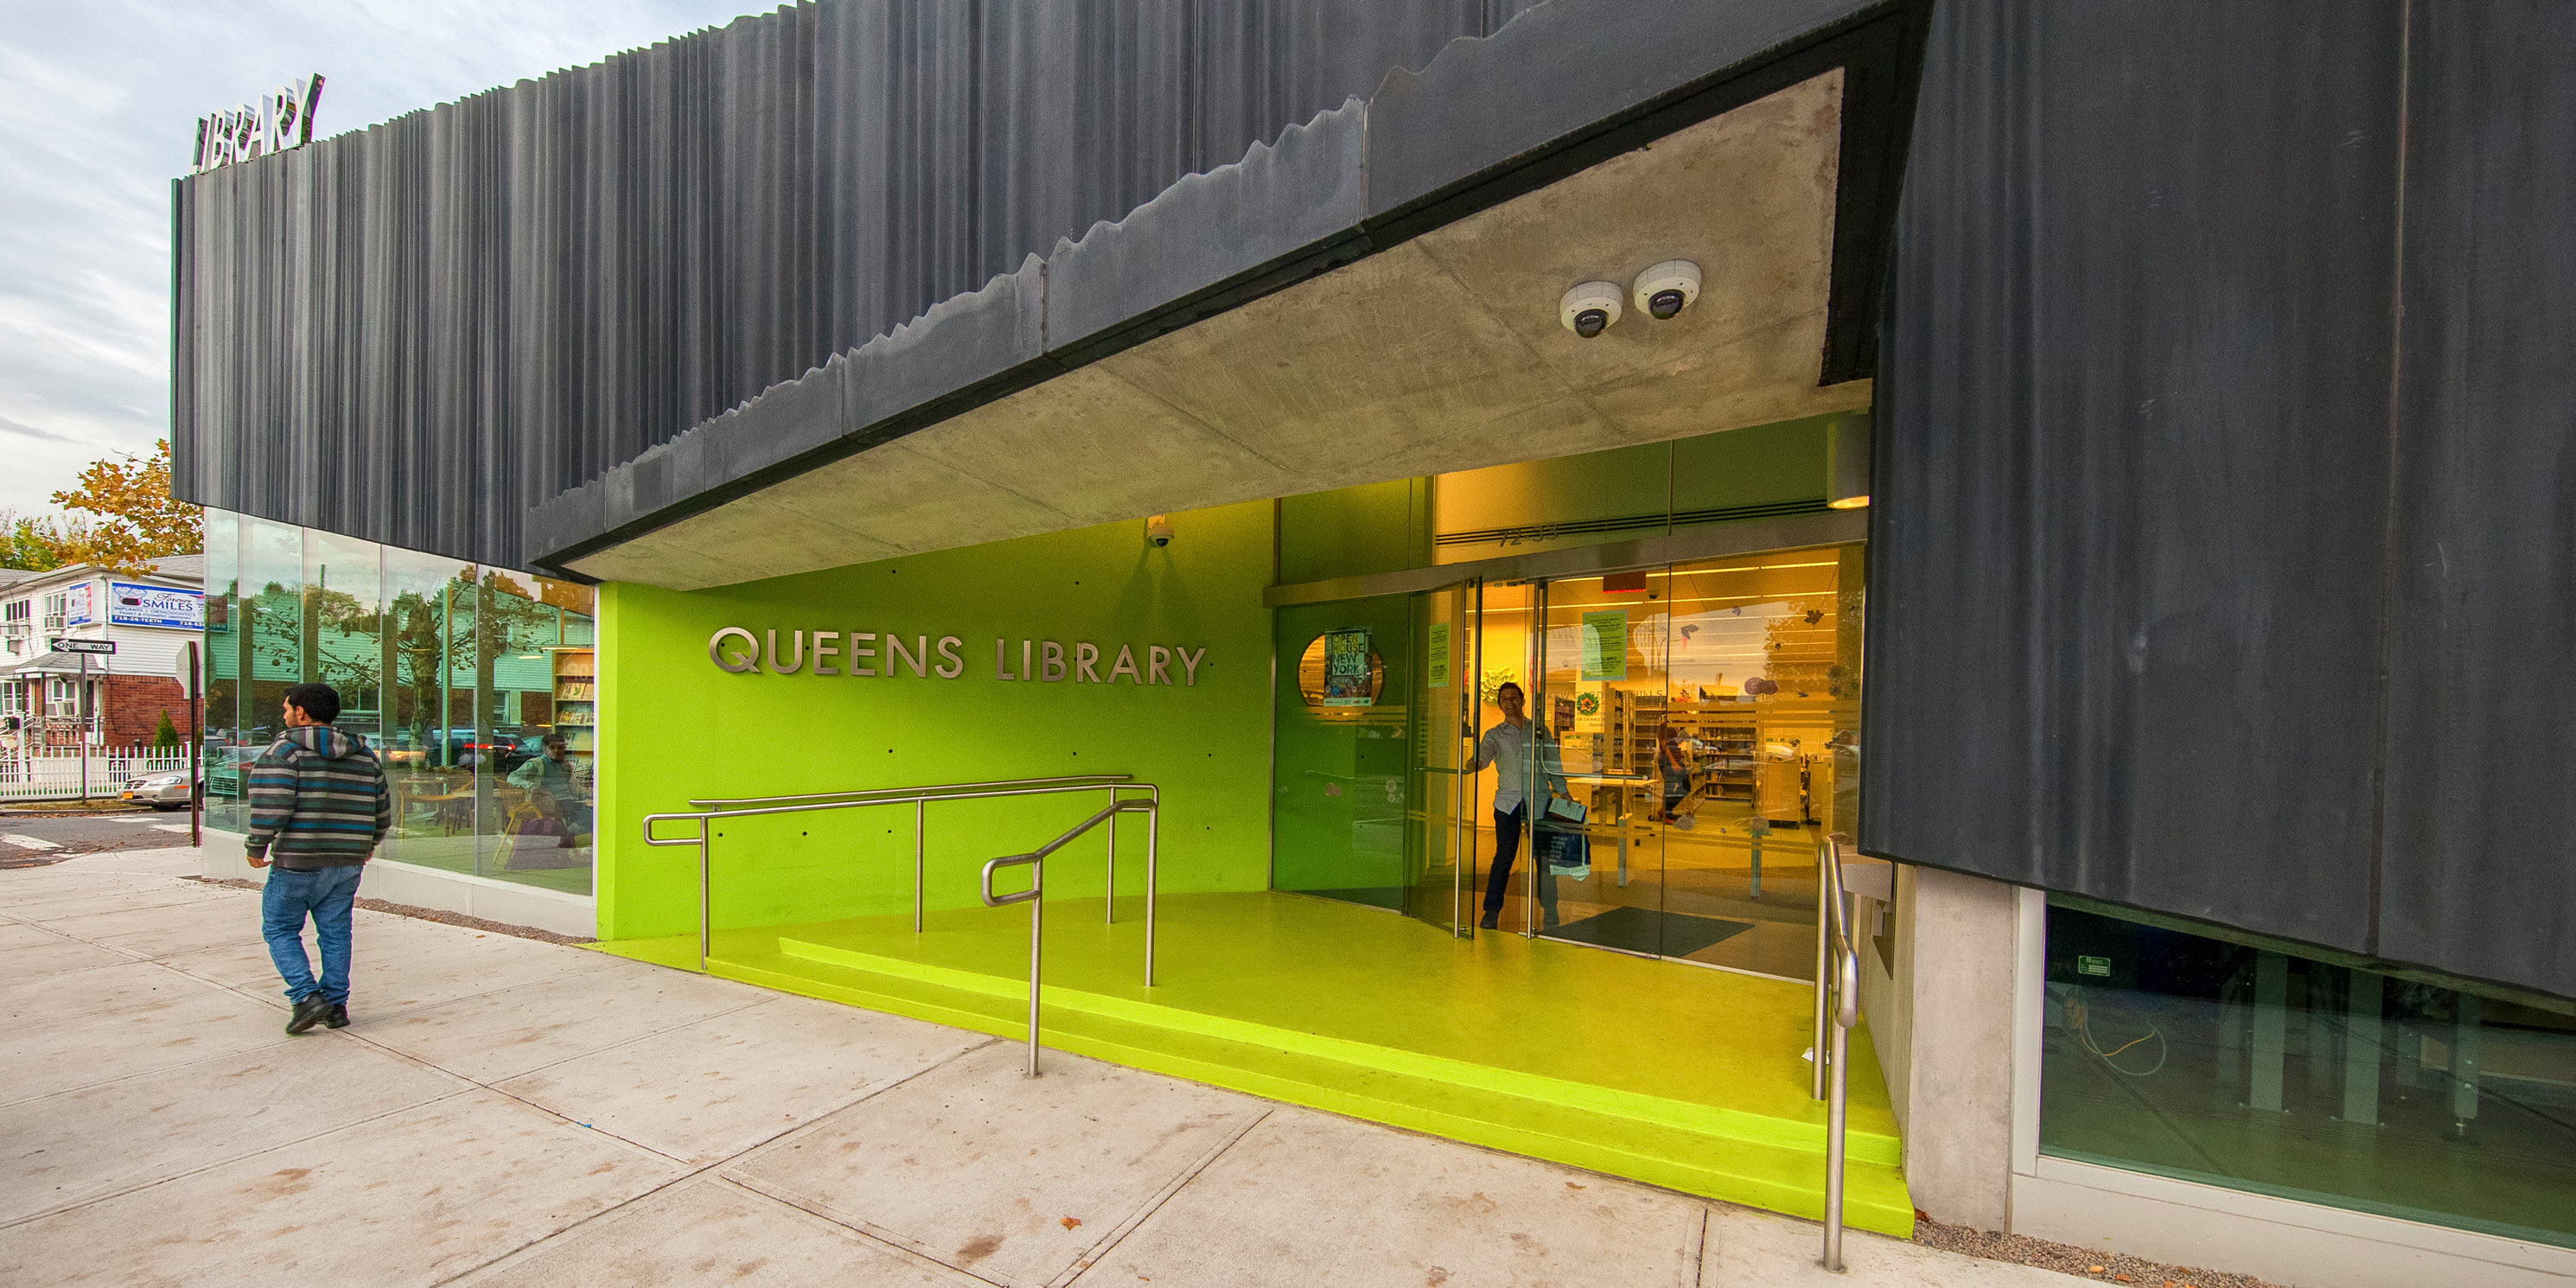 entrance to the Kew Gardens Hills Library